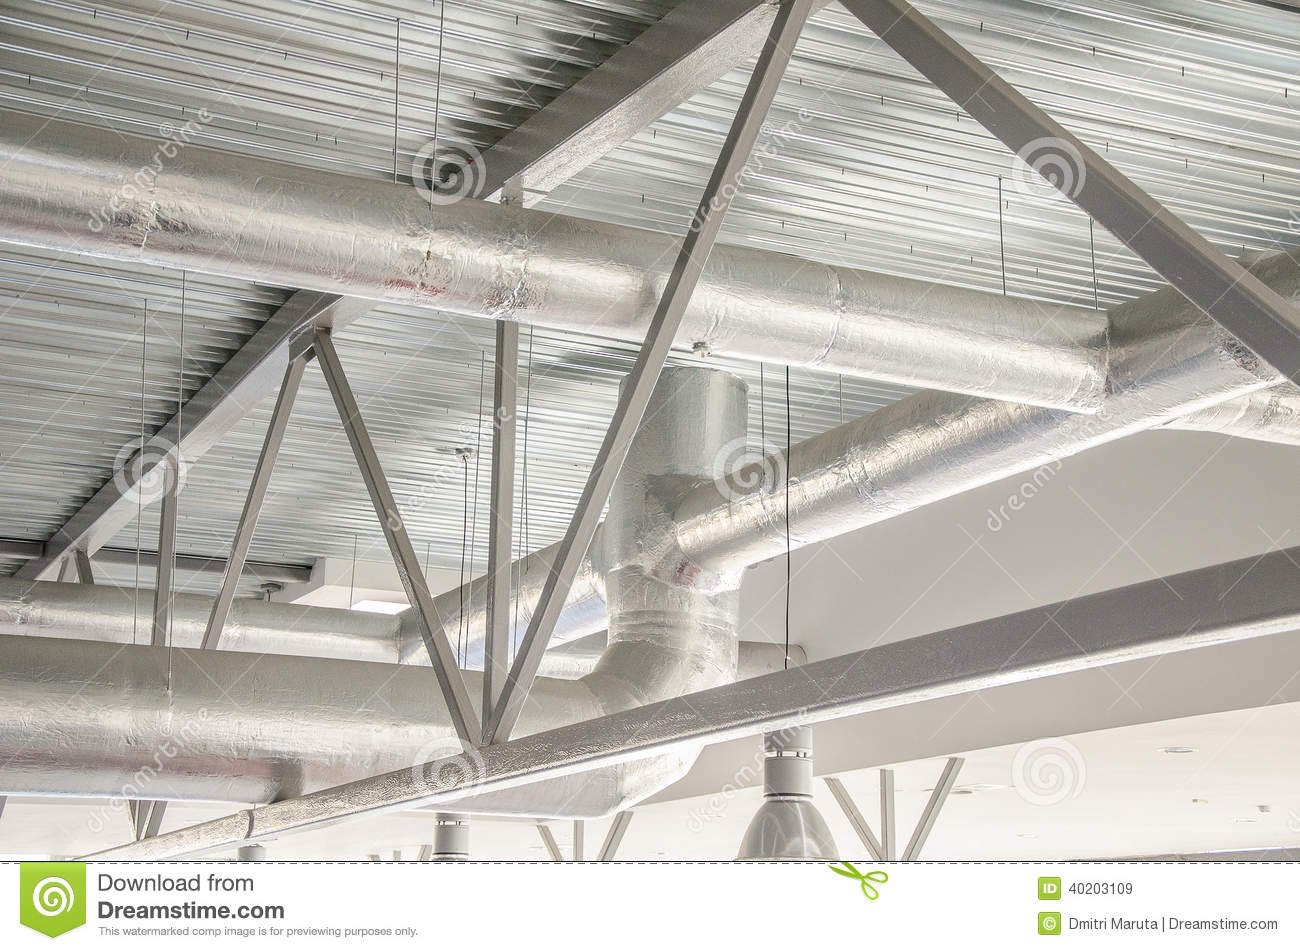 Industrial Ventilation Building : Industrial steel ventilation pipes stock photo image